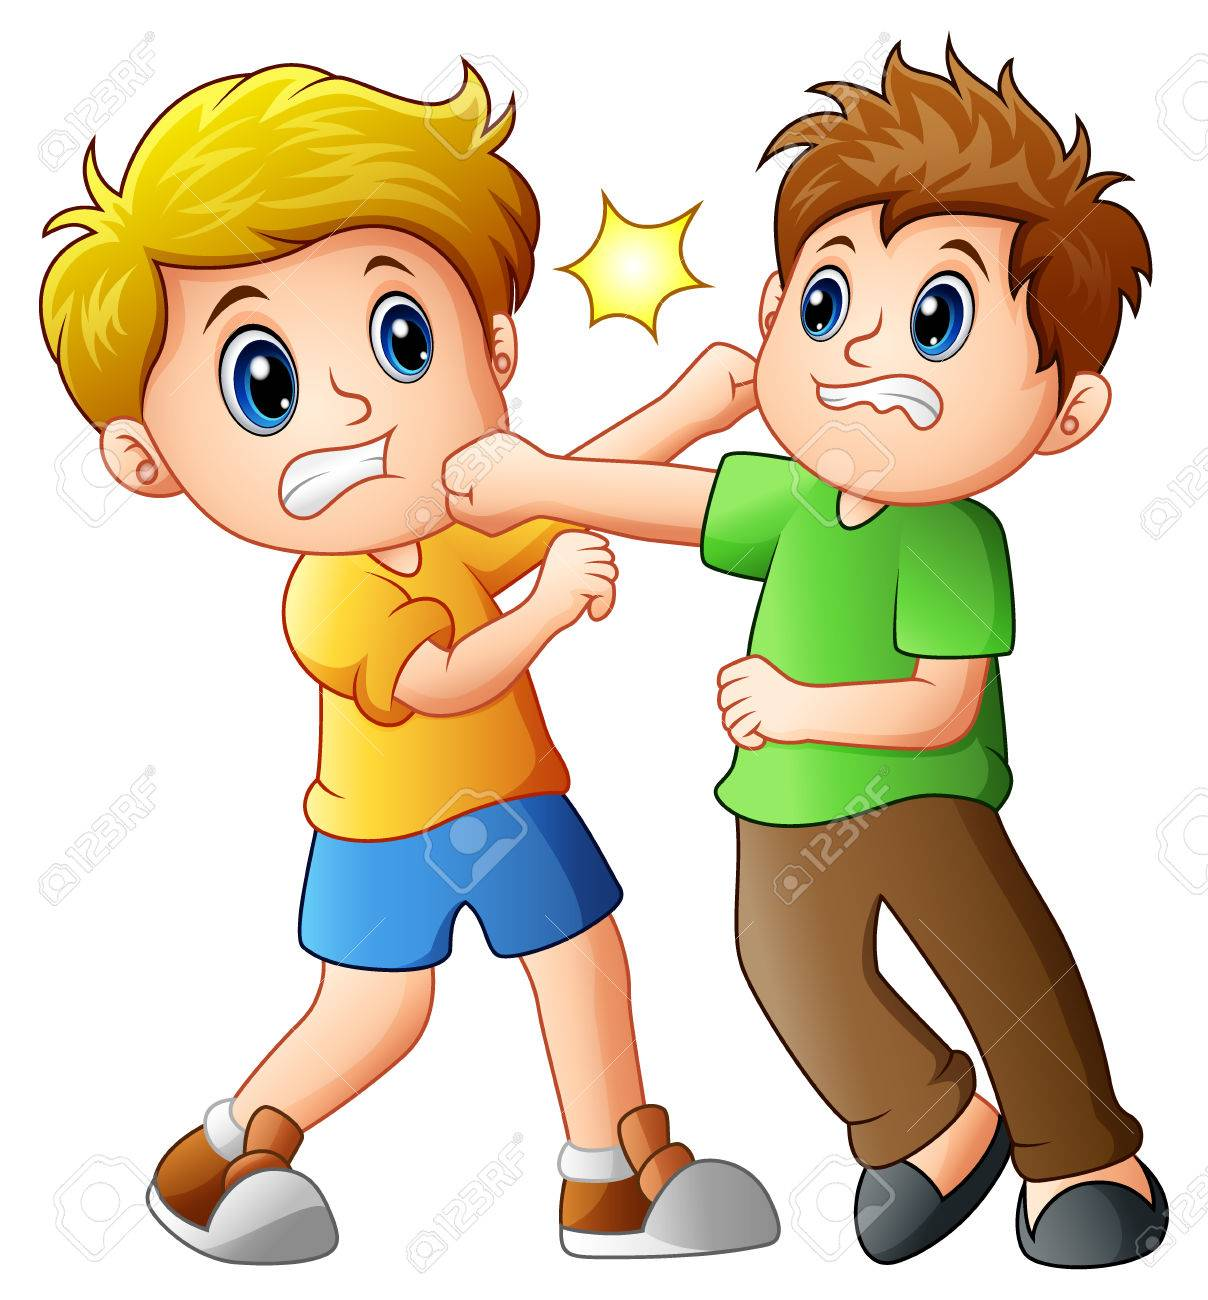 Clipart fighting 5 » Clipart Station.